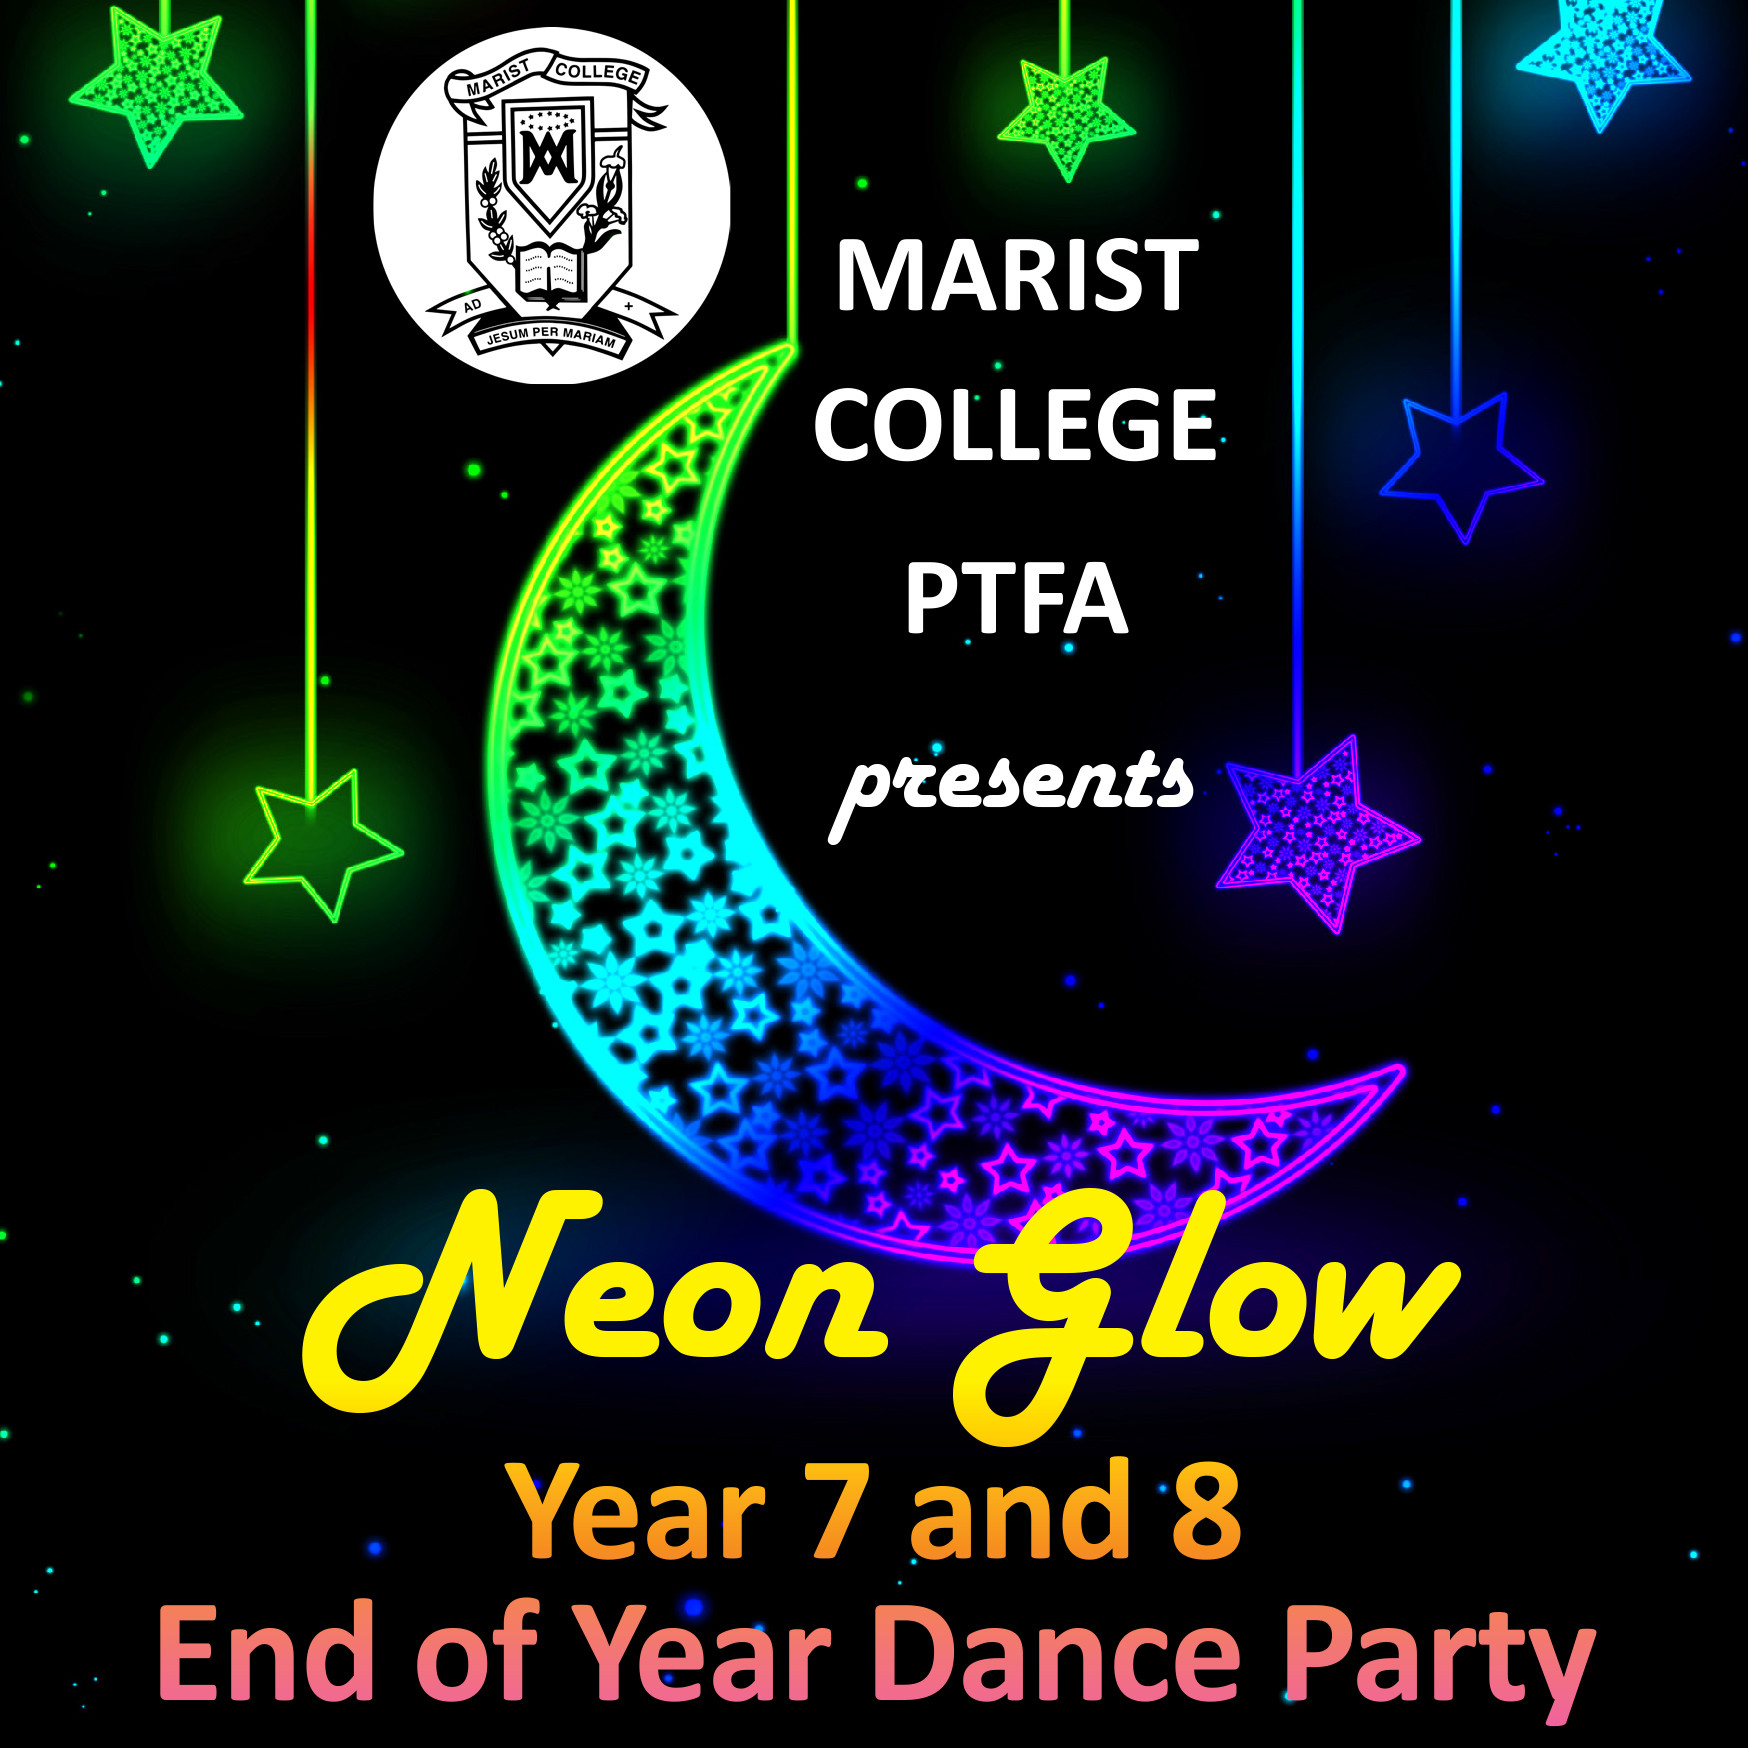 Neon Glow Year 7 & Year 8 Dance Party - Friday 1 November 7-9.30pm